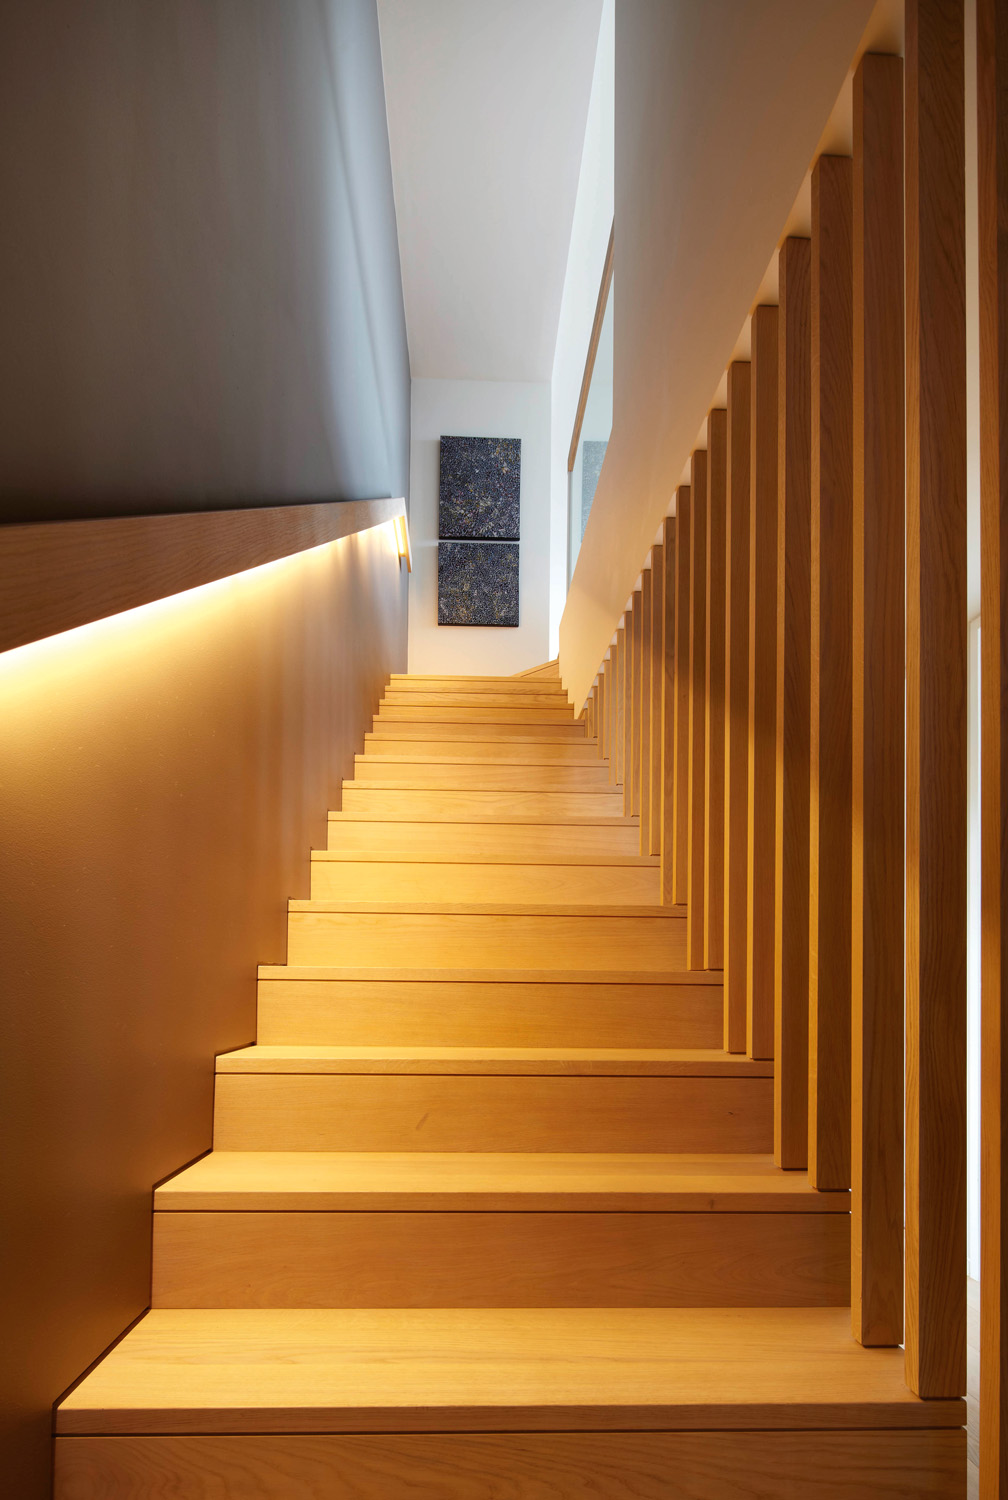 A timber staircase is a stunning addition to the space